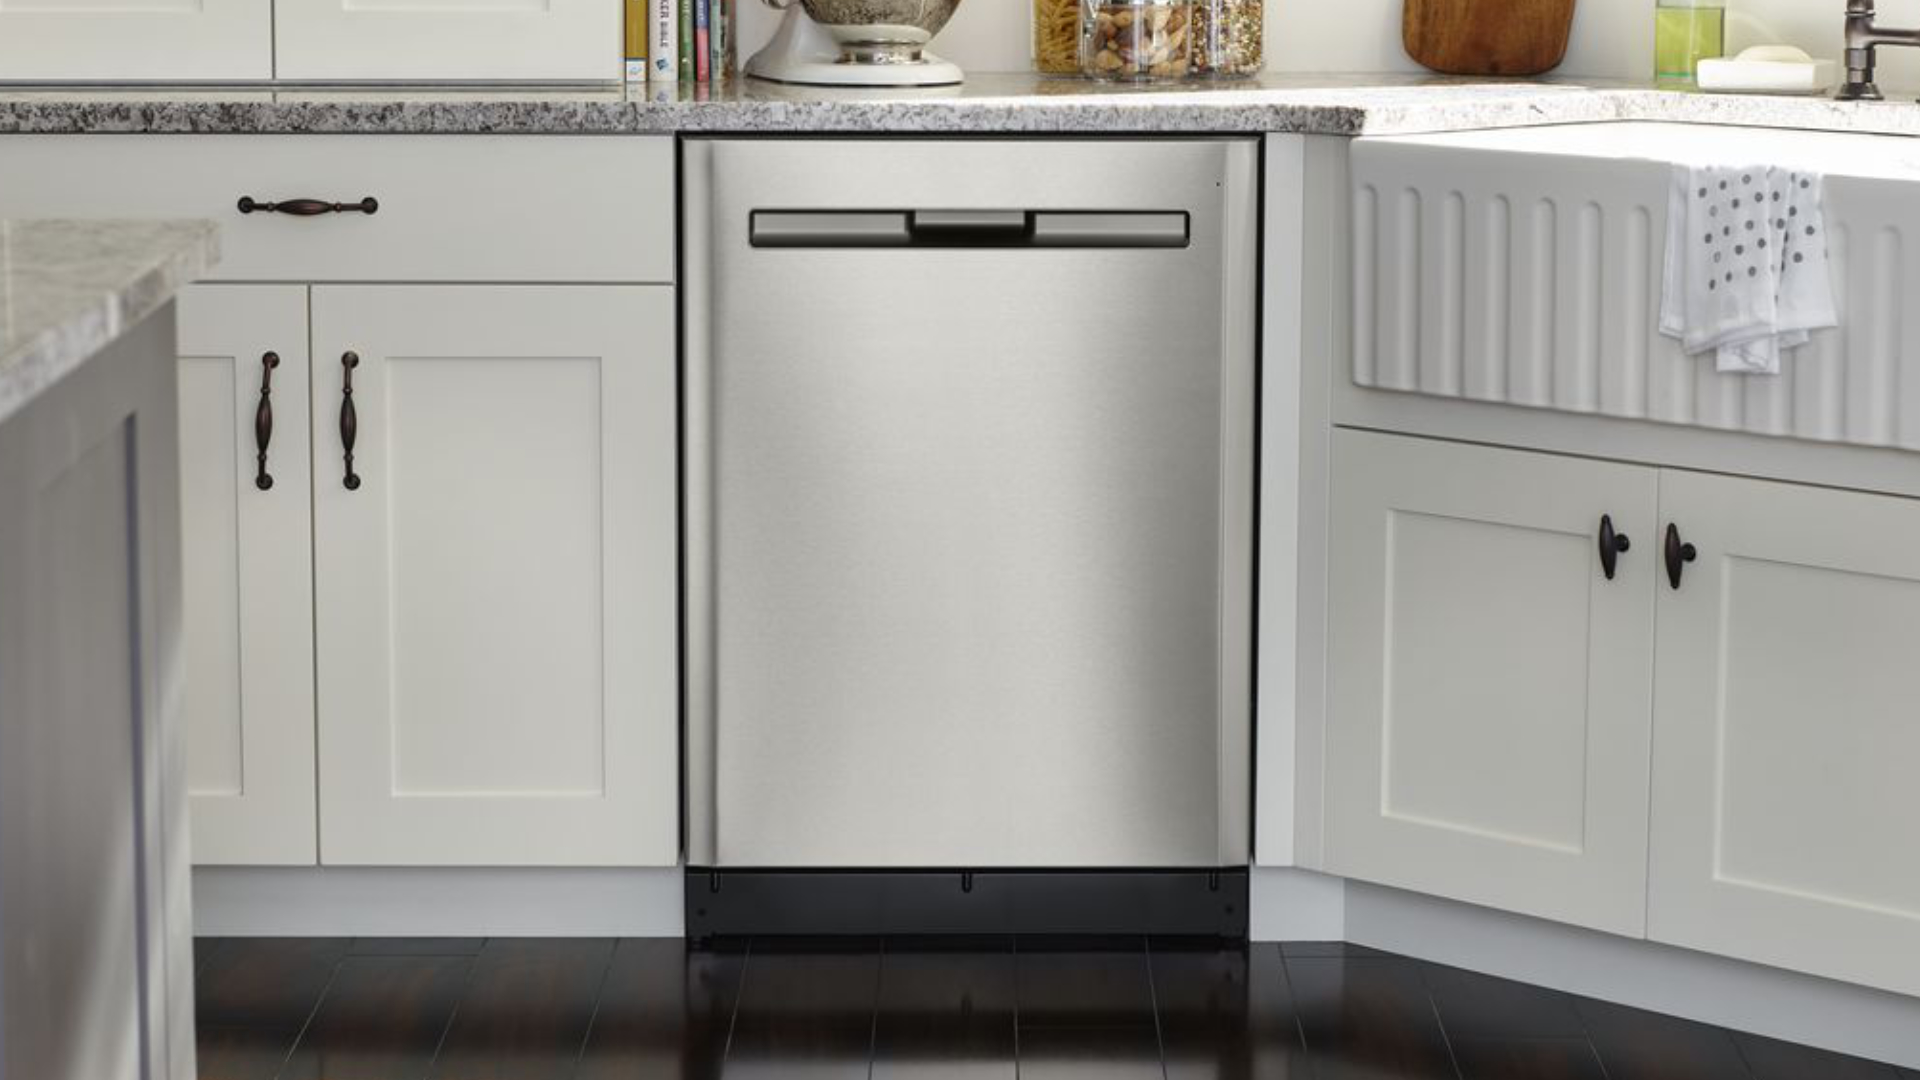 """Featured image for """"Maytag Dishwasher Leaking? Top 5 Reasons Why"""""""